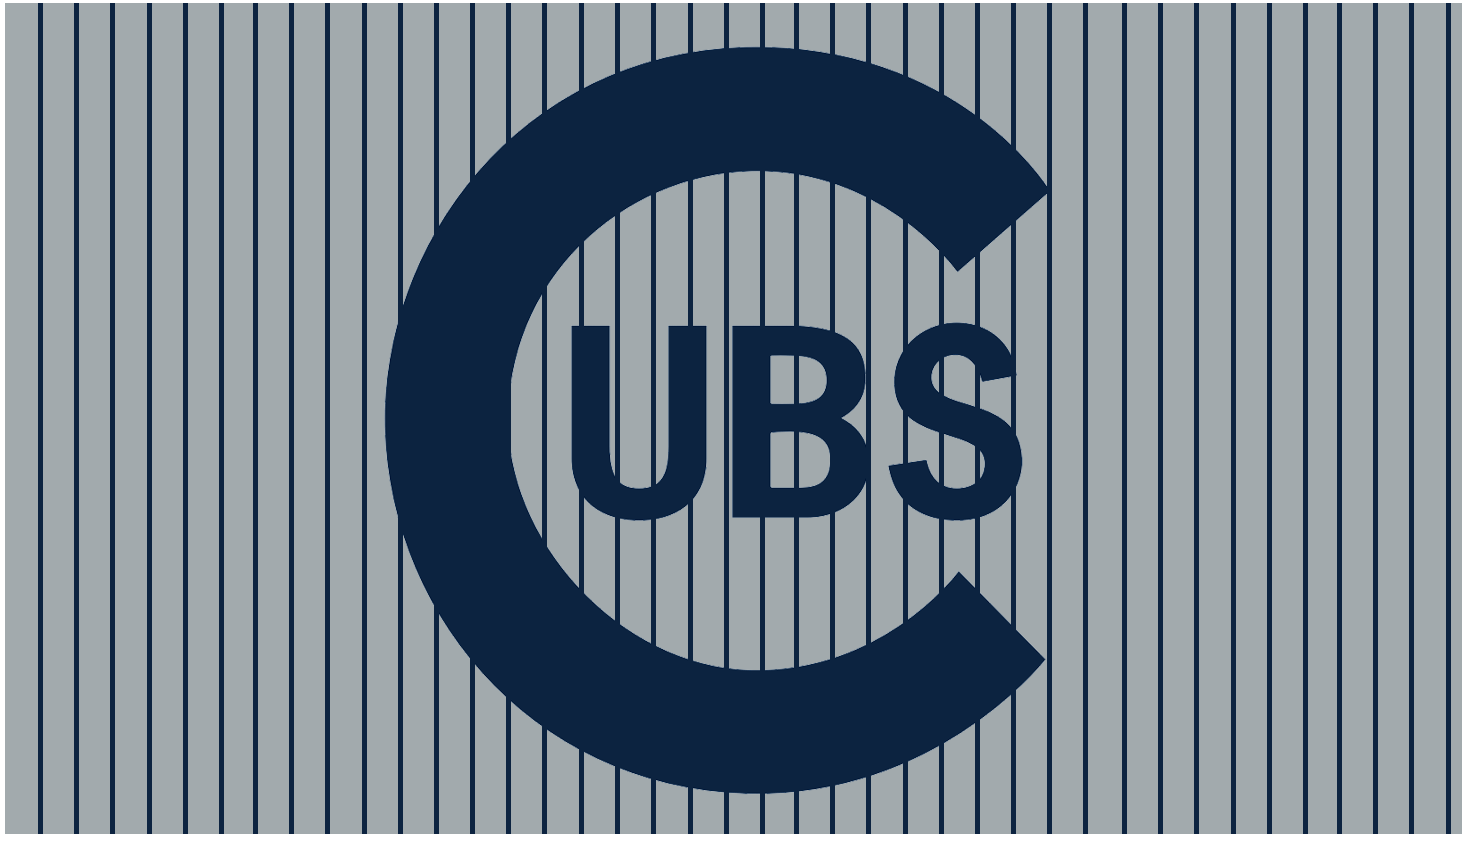 Chicago Cubs Logo Wordmark Logo (1909-1910) - Large navy blue C with UBS written inside of it on a grey background with navy blue pinstripes. Worn on the Chicago Cubs road uniform from 1909-10 SportsLogos.Net